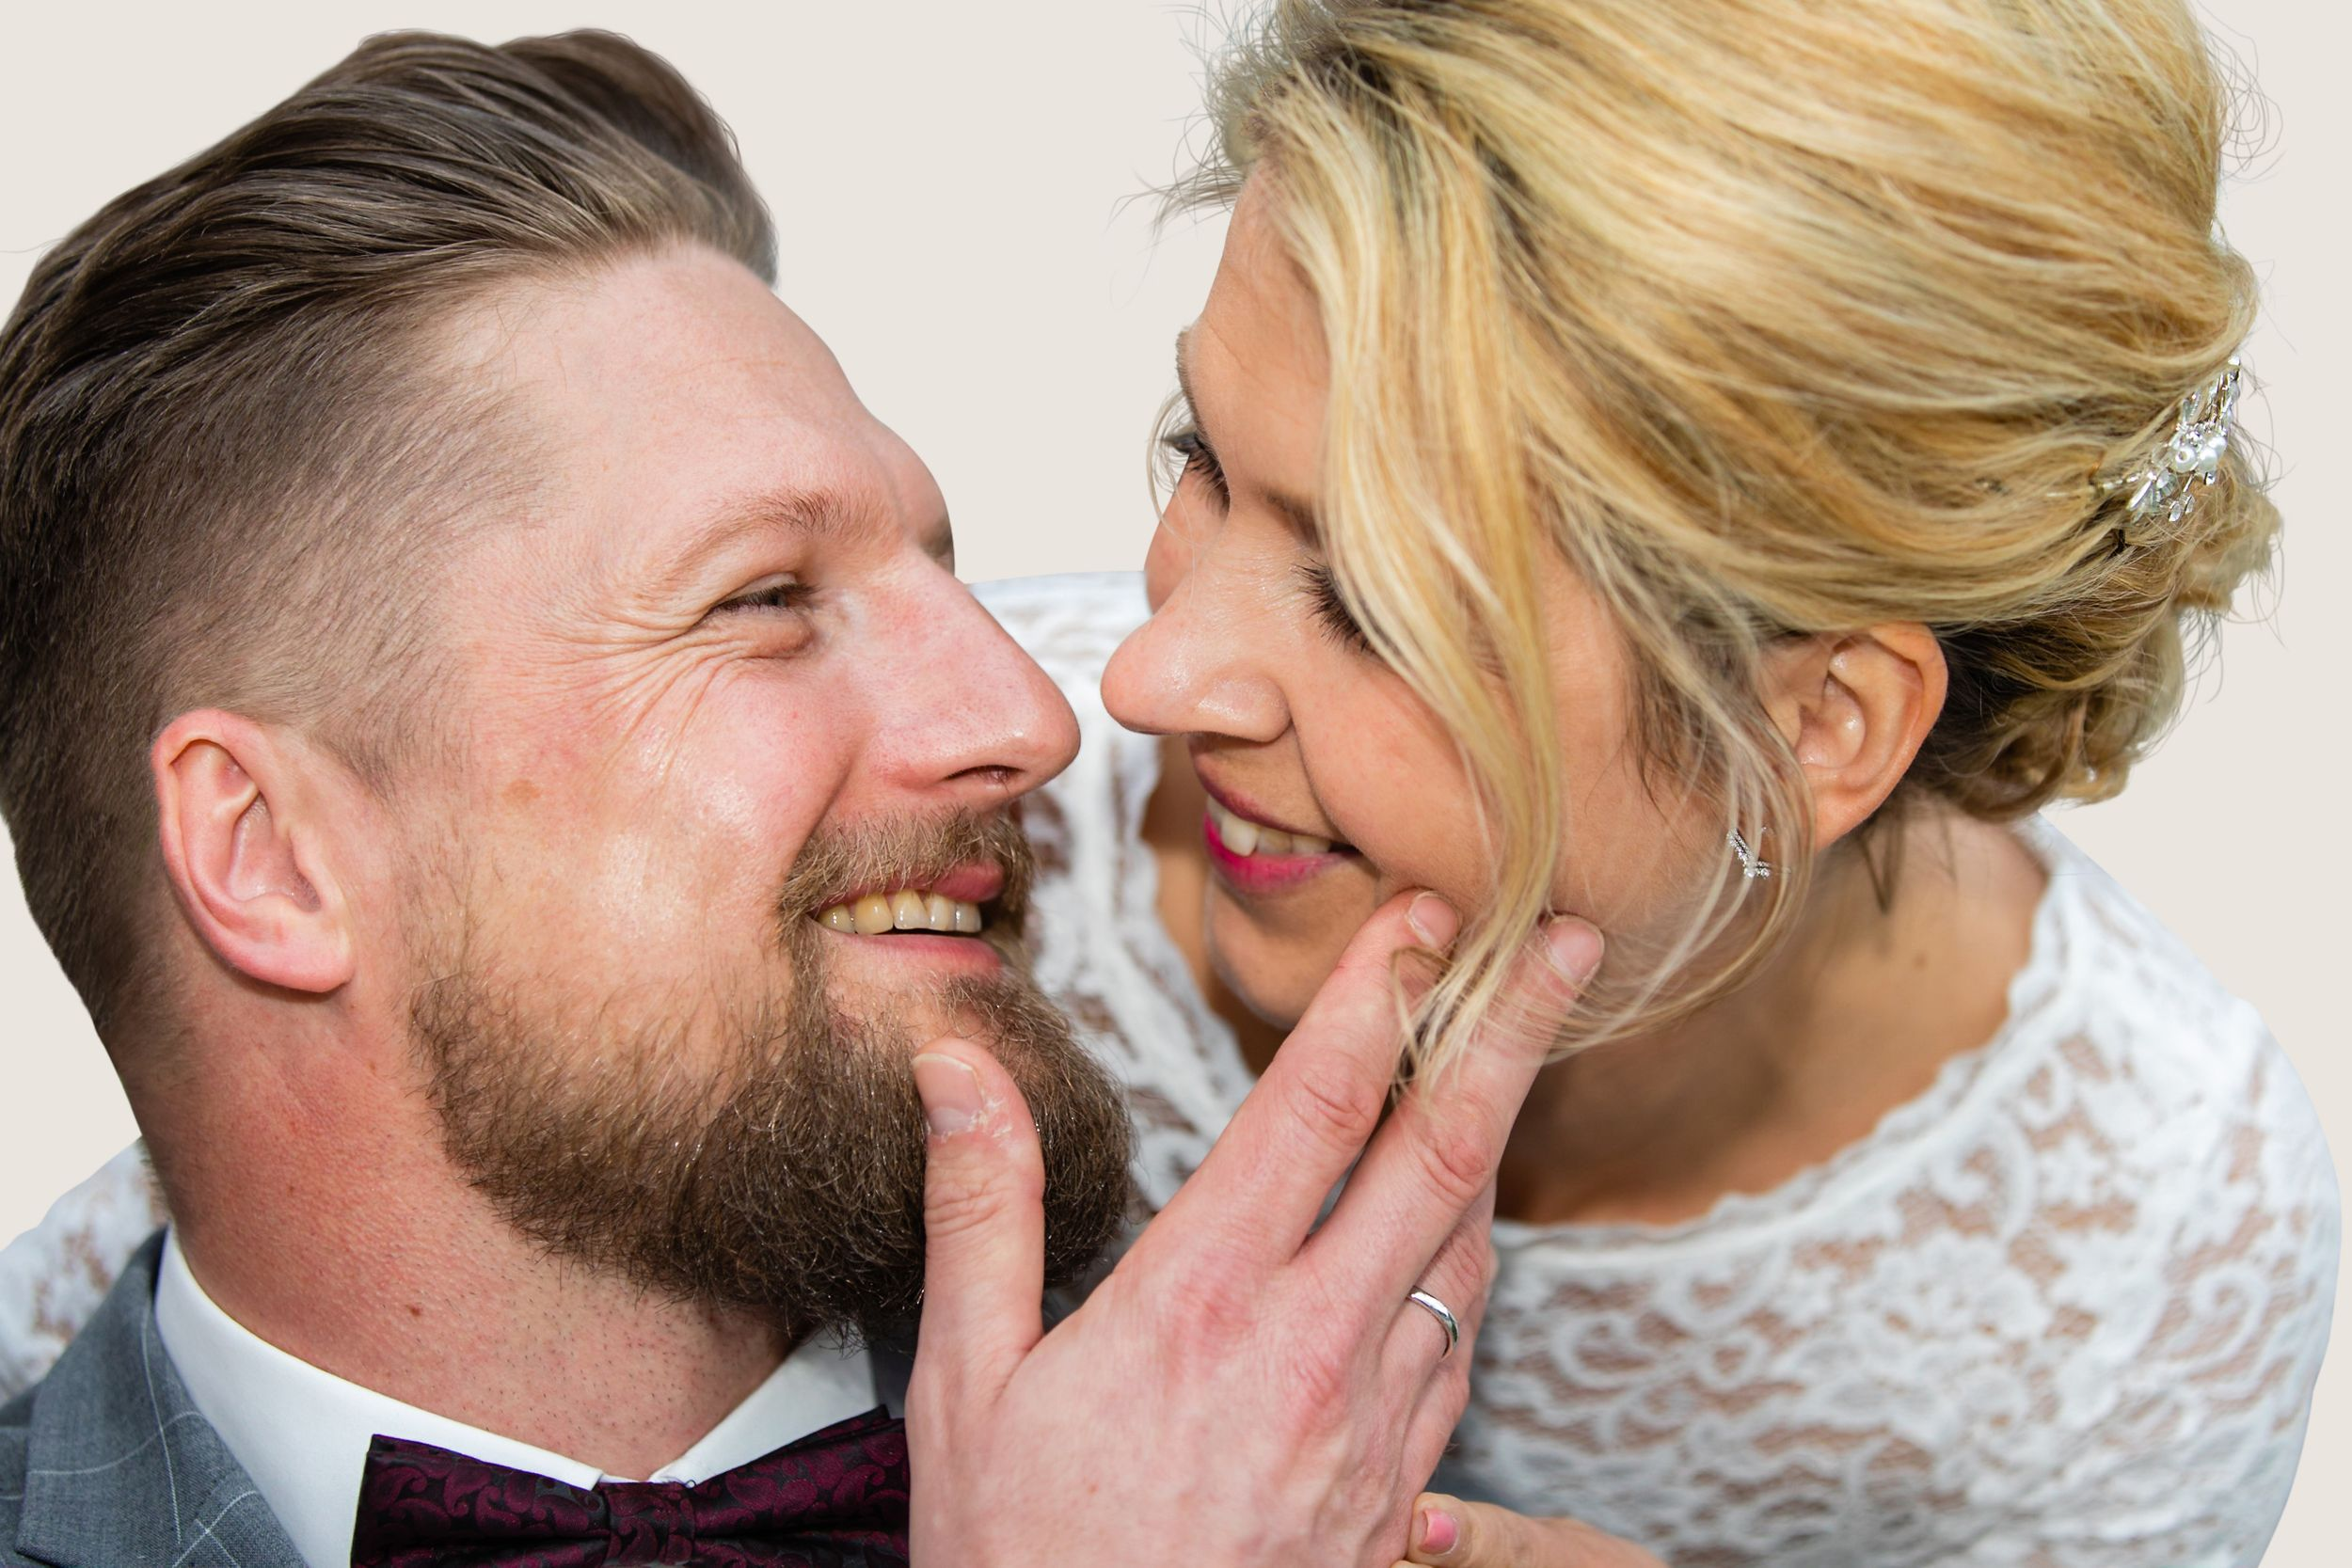 Photos of amazing couples and get a first hand glimpse into the love they share for one another.